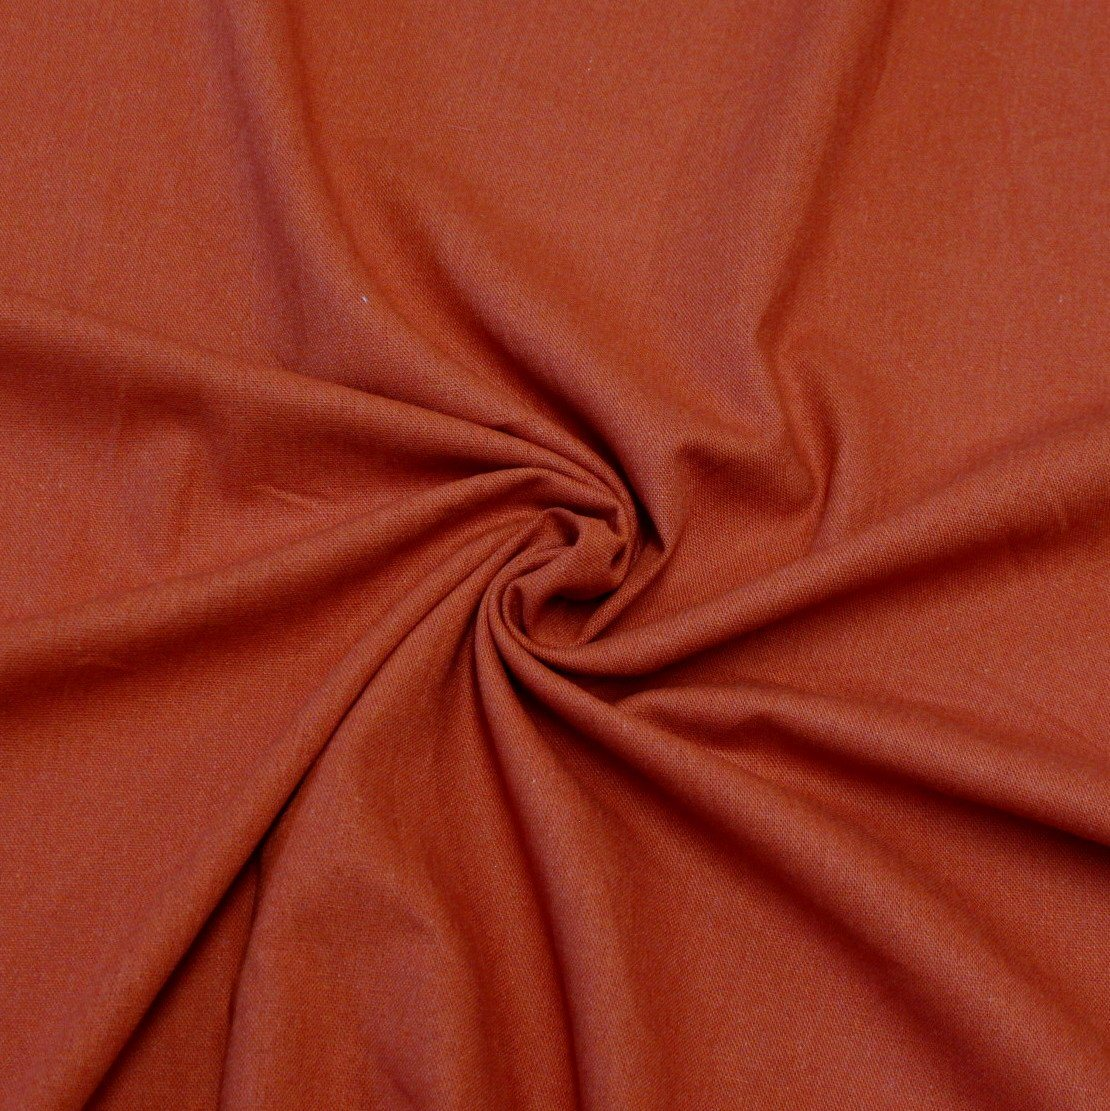 Rust Medium Weight Rayon Linen - Raspberry Creek Fabrics